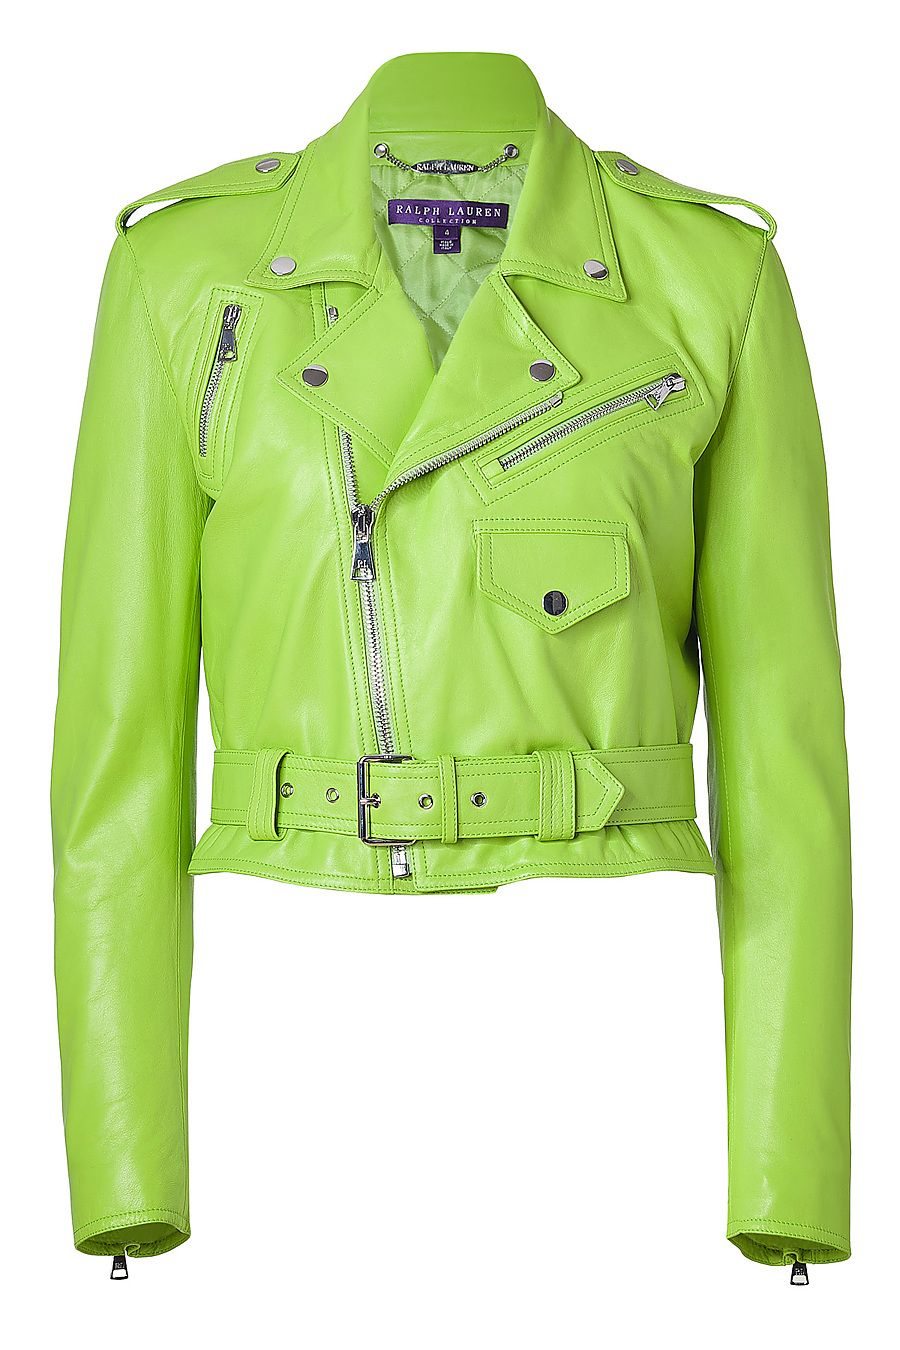 RALPH LAUREN Lime Green Glove Leather Jacket Leather